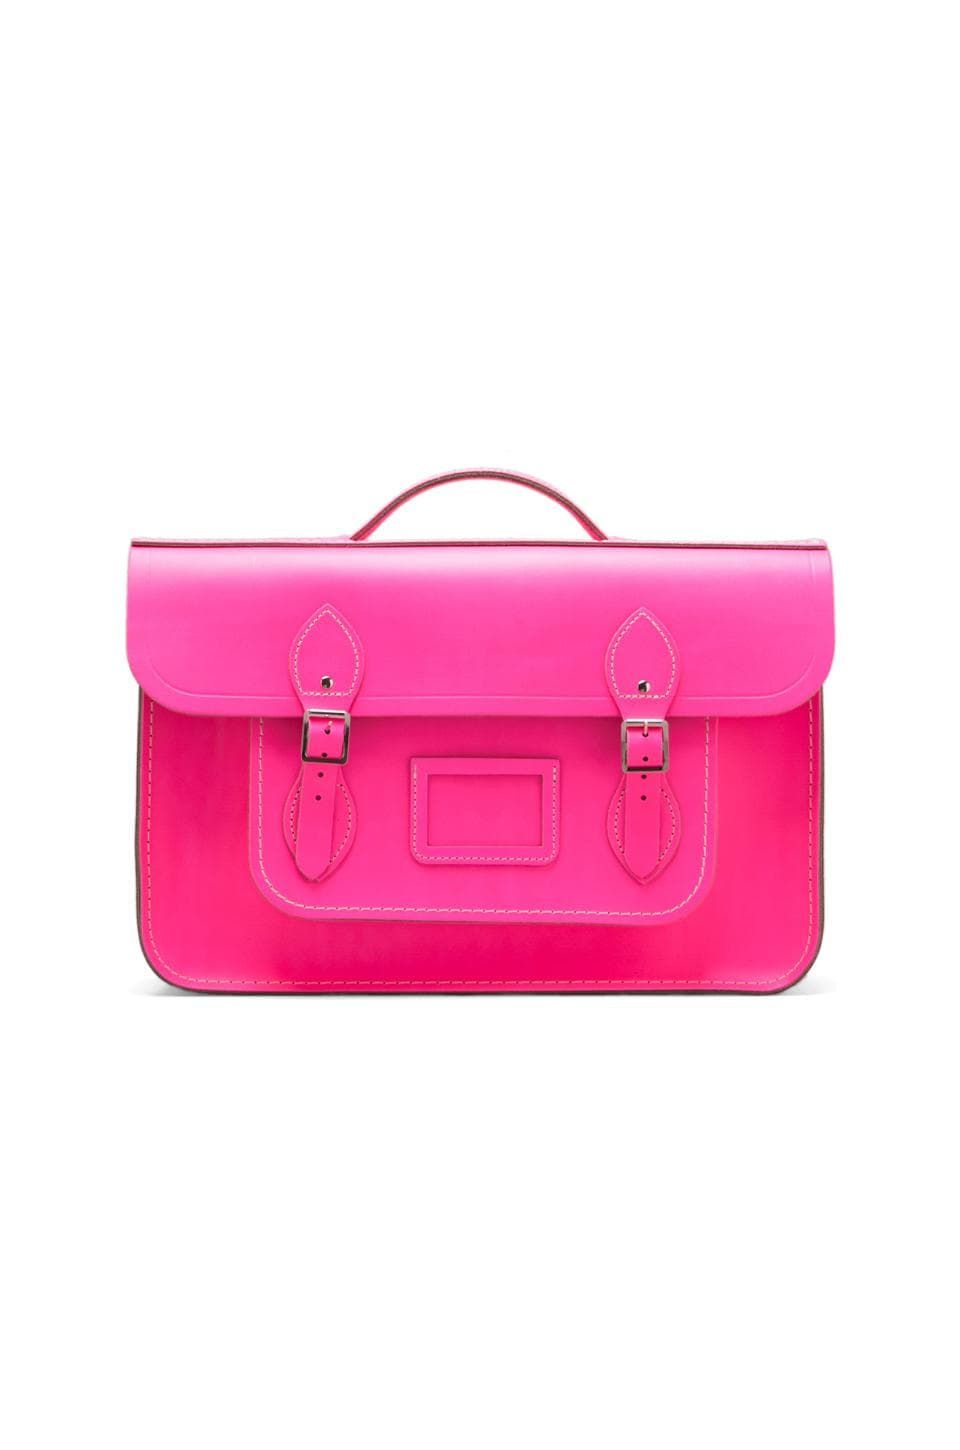 The Cambridge Satchel Company Batchel Backpack in Fluoro Pink